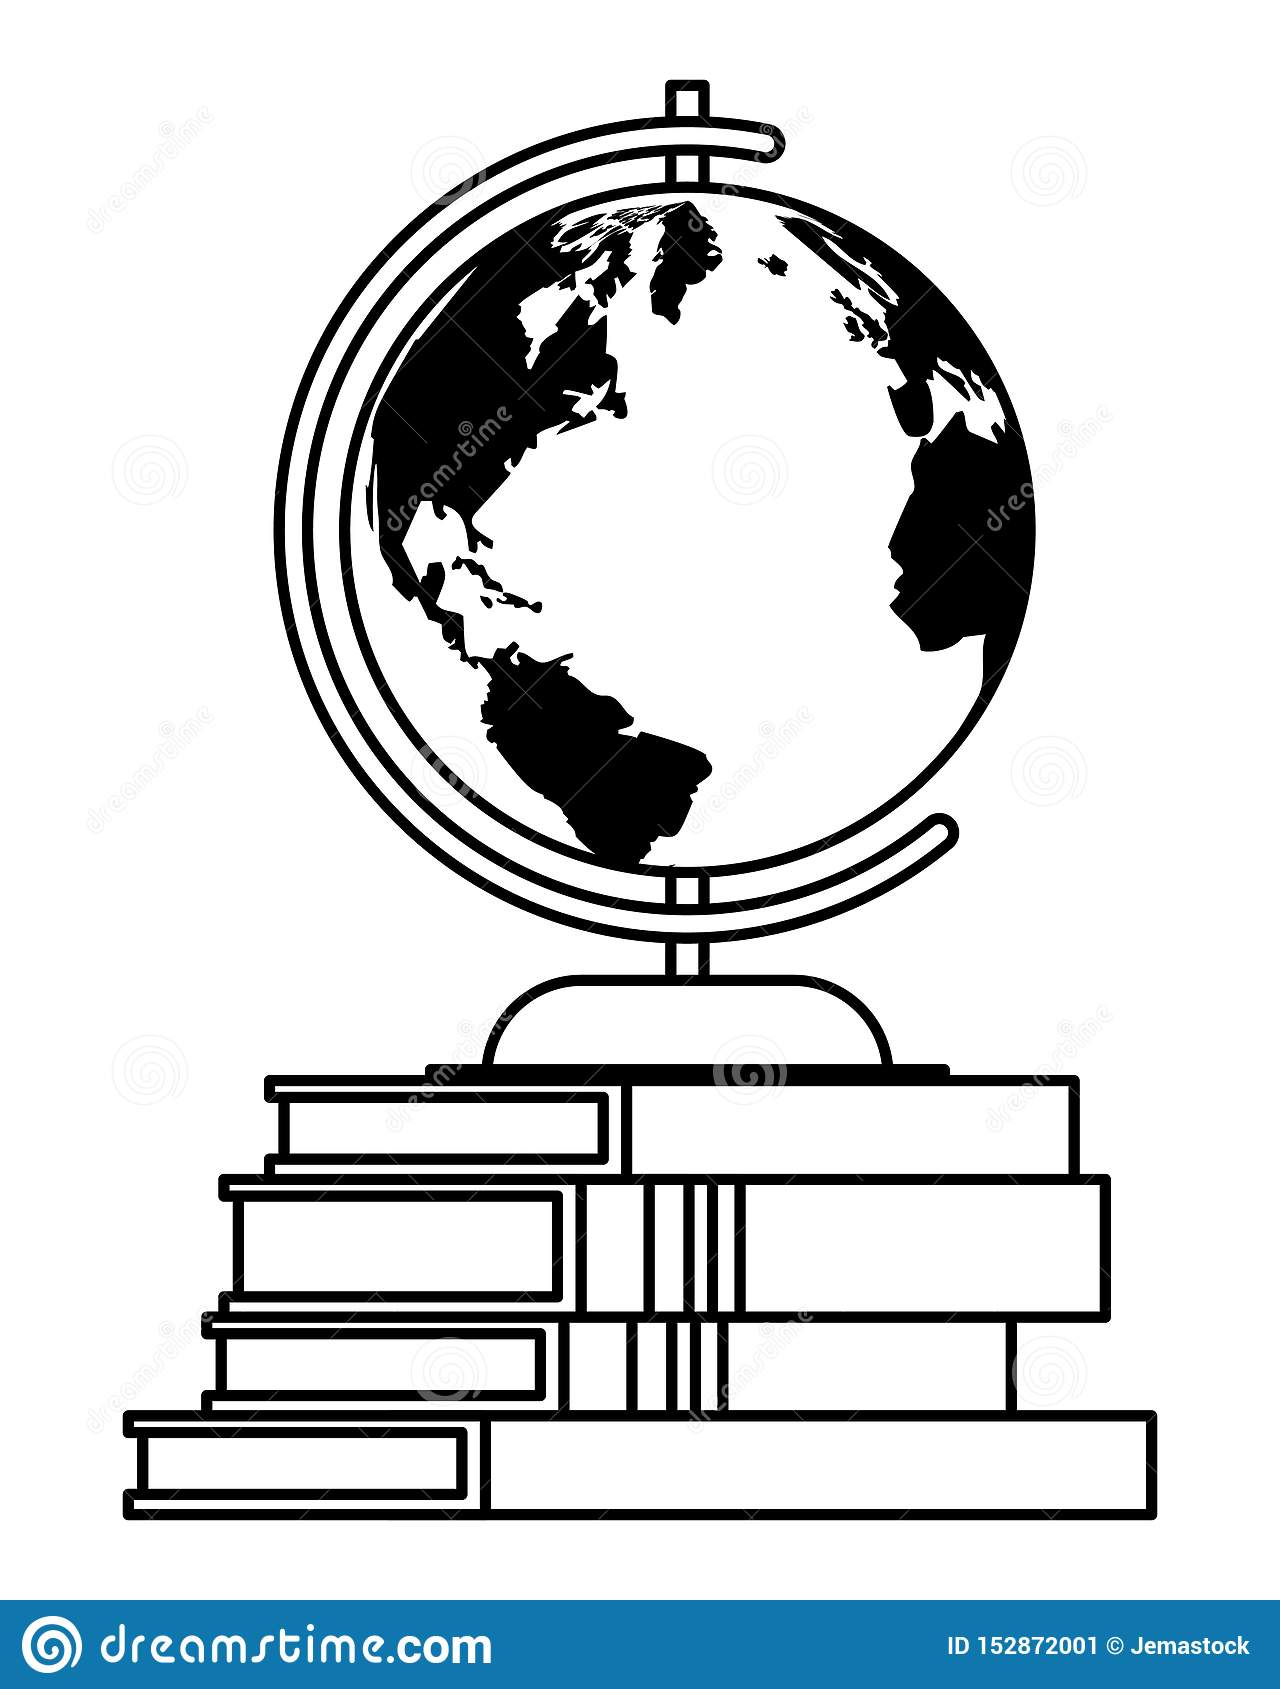 World Globe On Education Books Cartoons In Black And White Stock Vector Illustration Of Educate Classroom 152872001